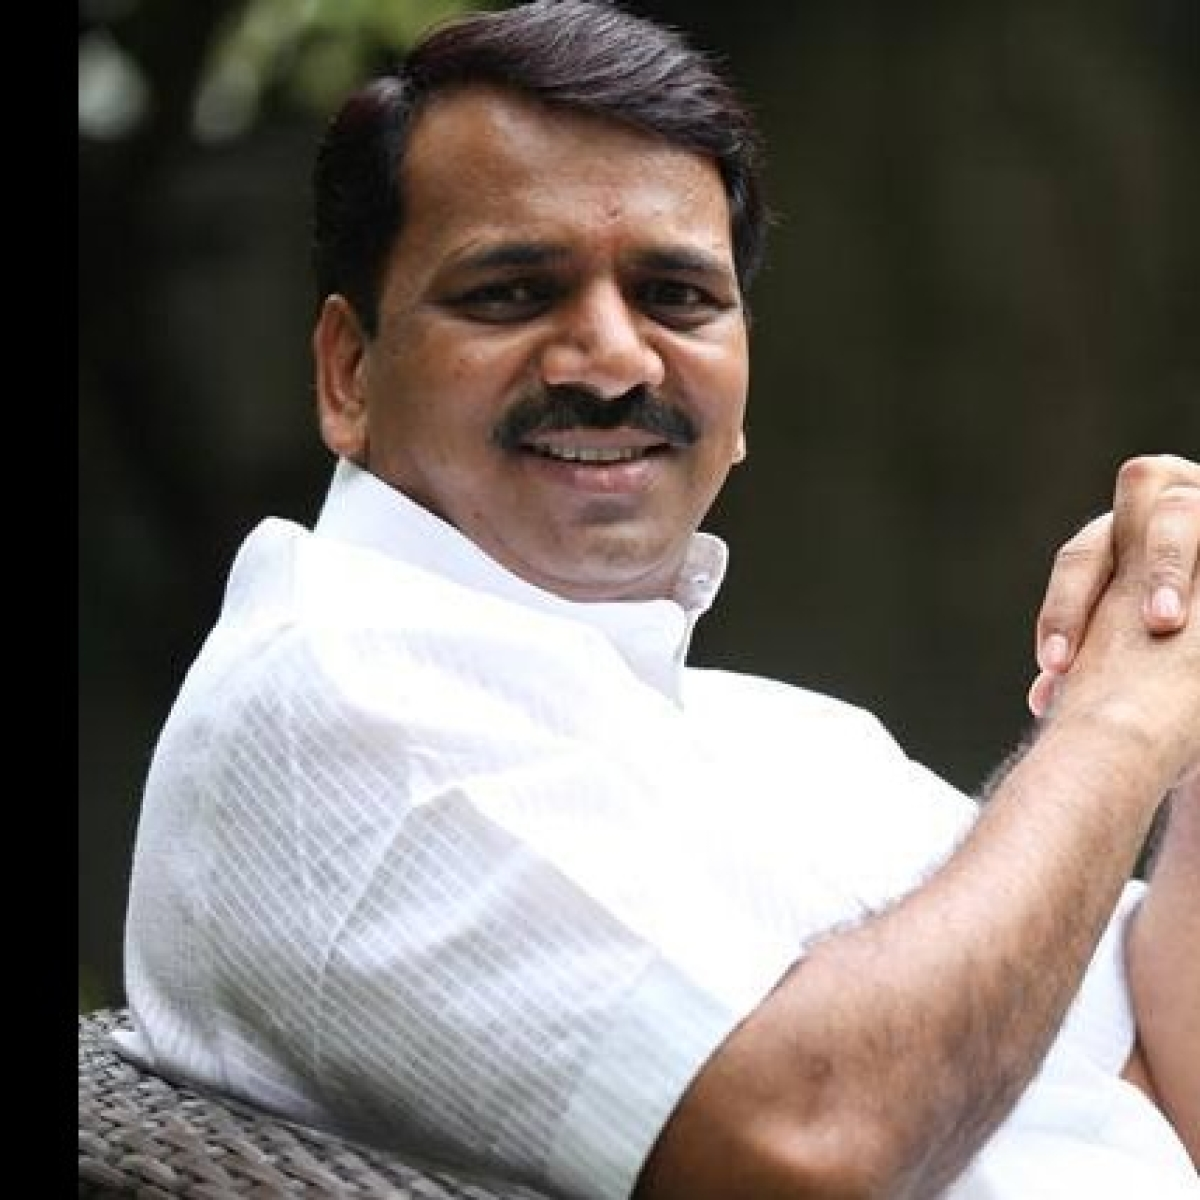 Bombay High Court relief for ex-BJP MLA Narendra Mehta of raping a corporator from Mira-Bhayander